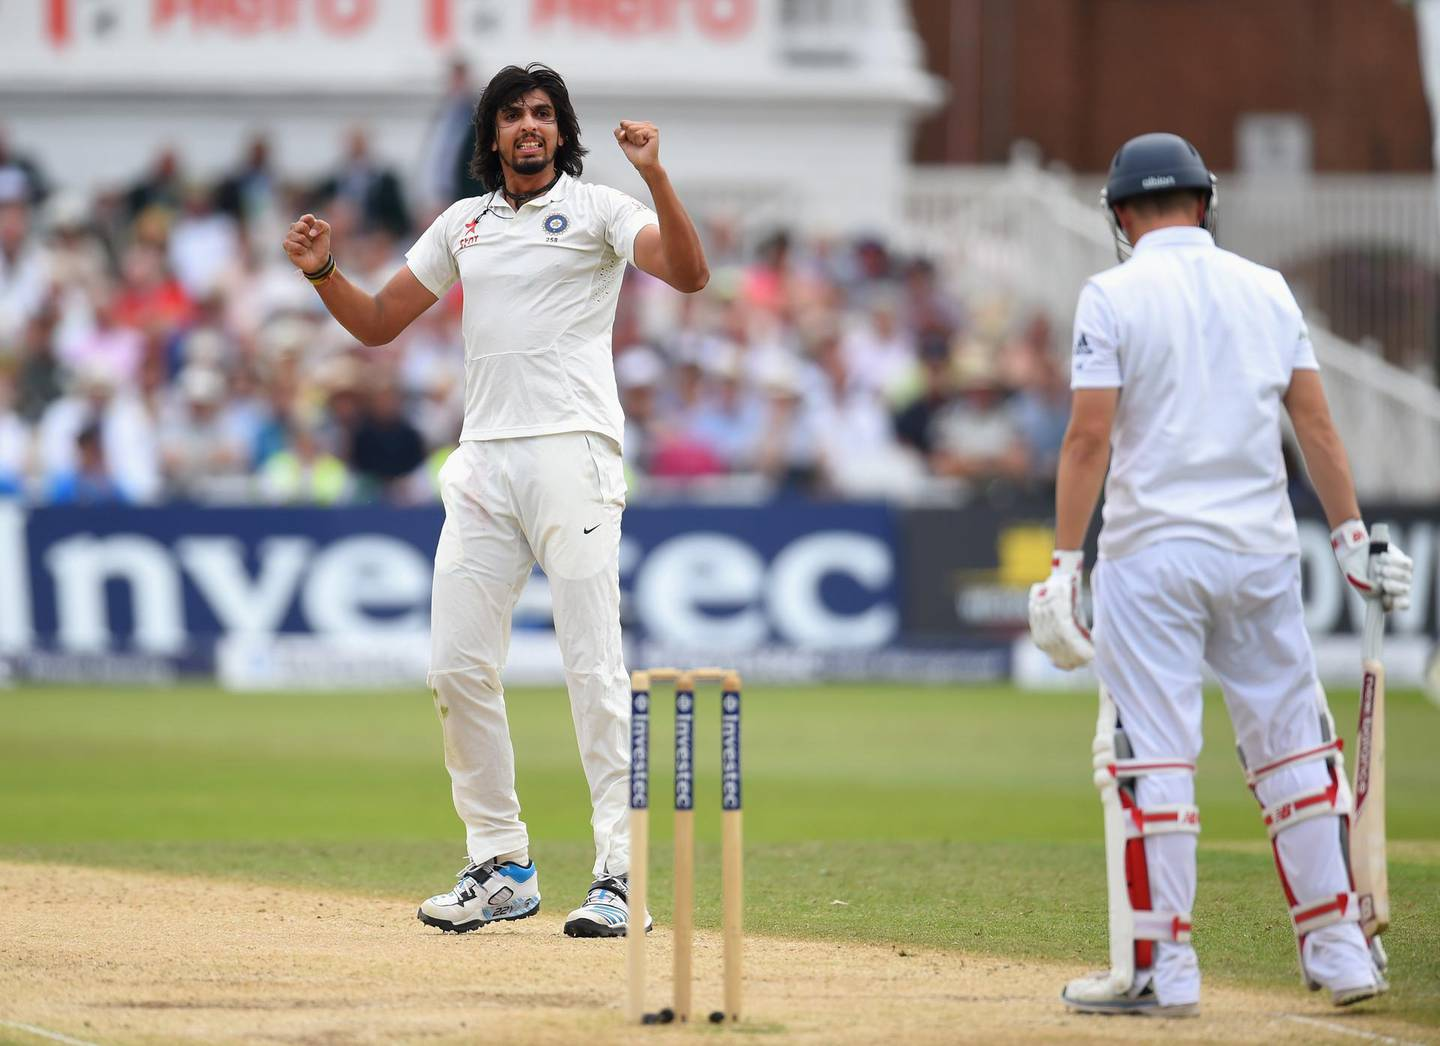 NOTTINGHAM, ENGLAND - JULY 11:  India bowler Ishant Sharma celebrates after dismissing England batsman Gary Ballance during day three of the 1st  Investec Test Match between England and India at  Trent Bridge on July 11, 2014 in Nottingham, England.  (Photo by Stu Forster/Getty Images)